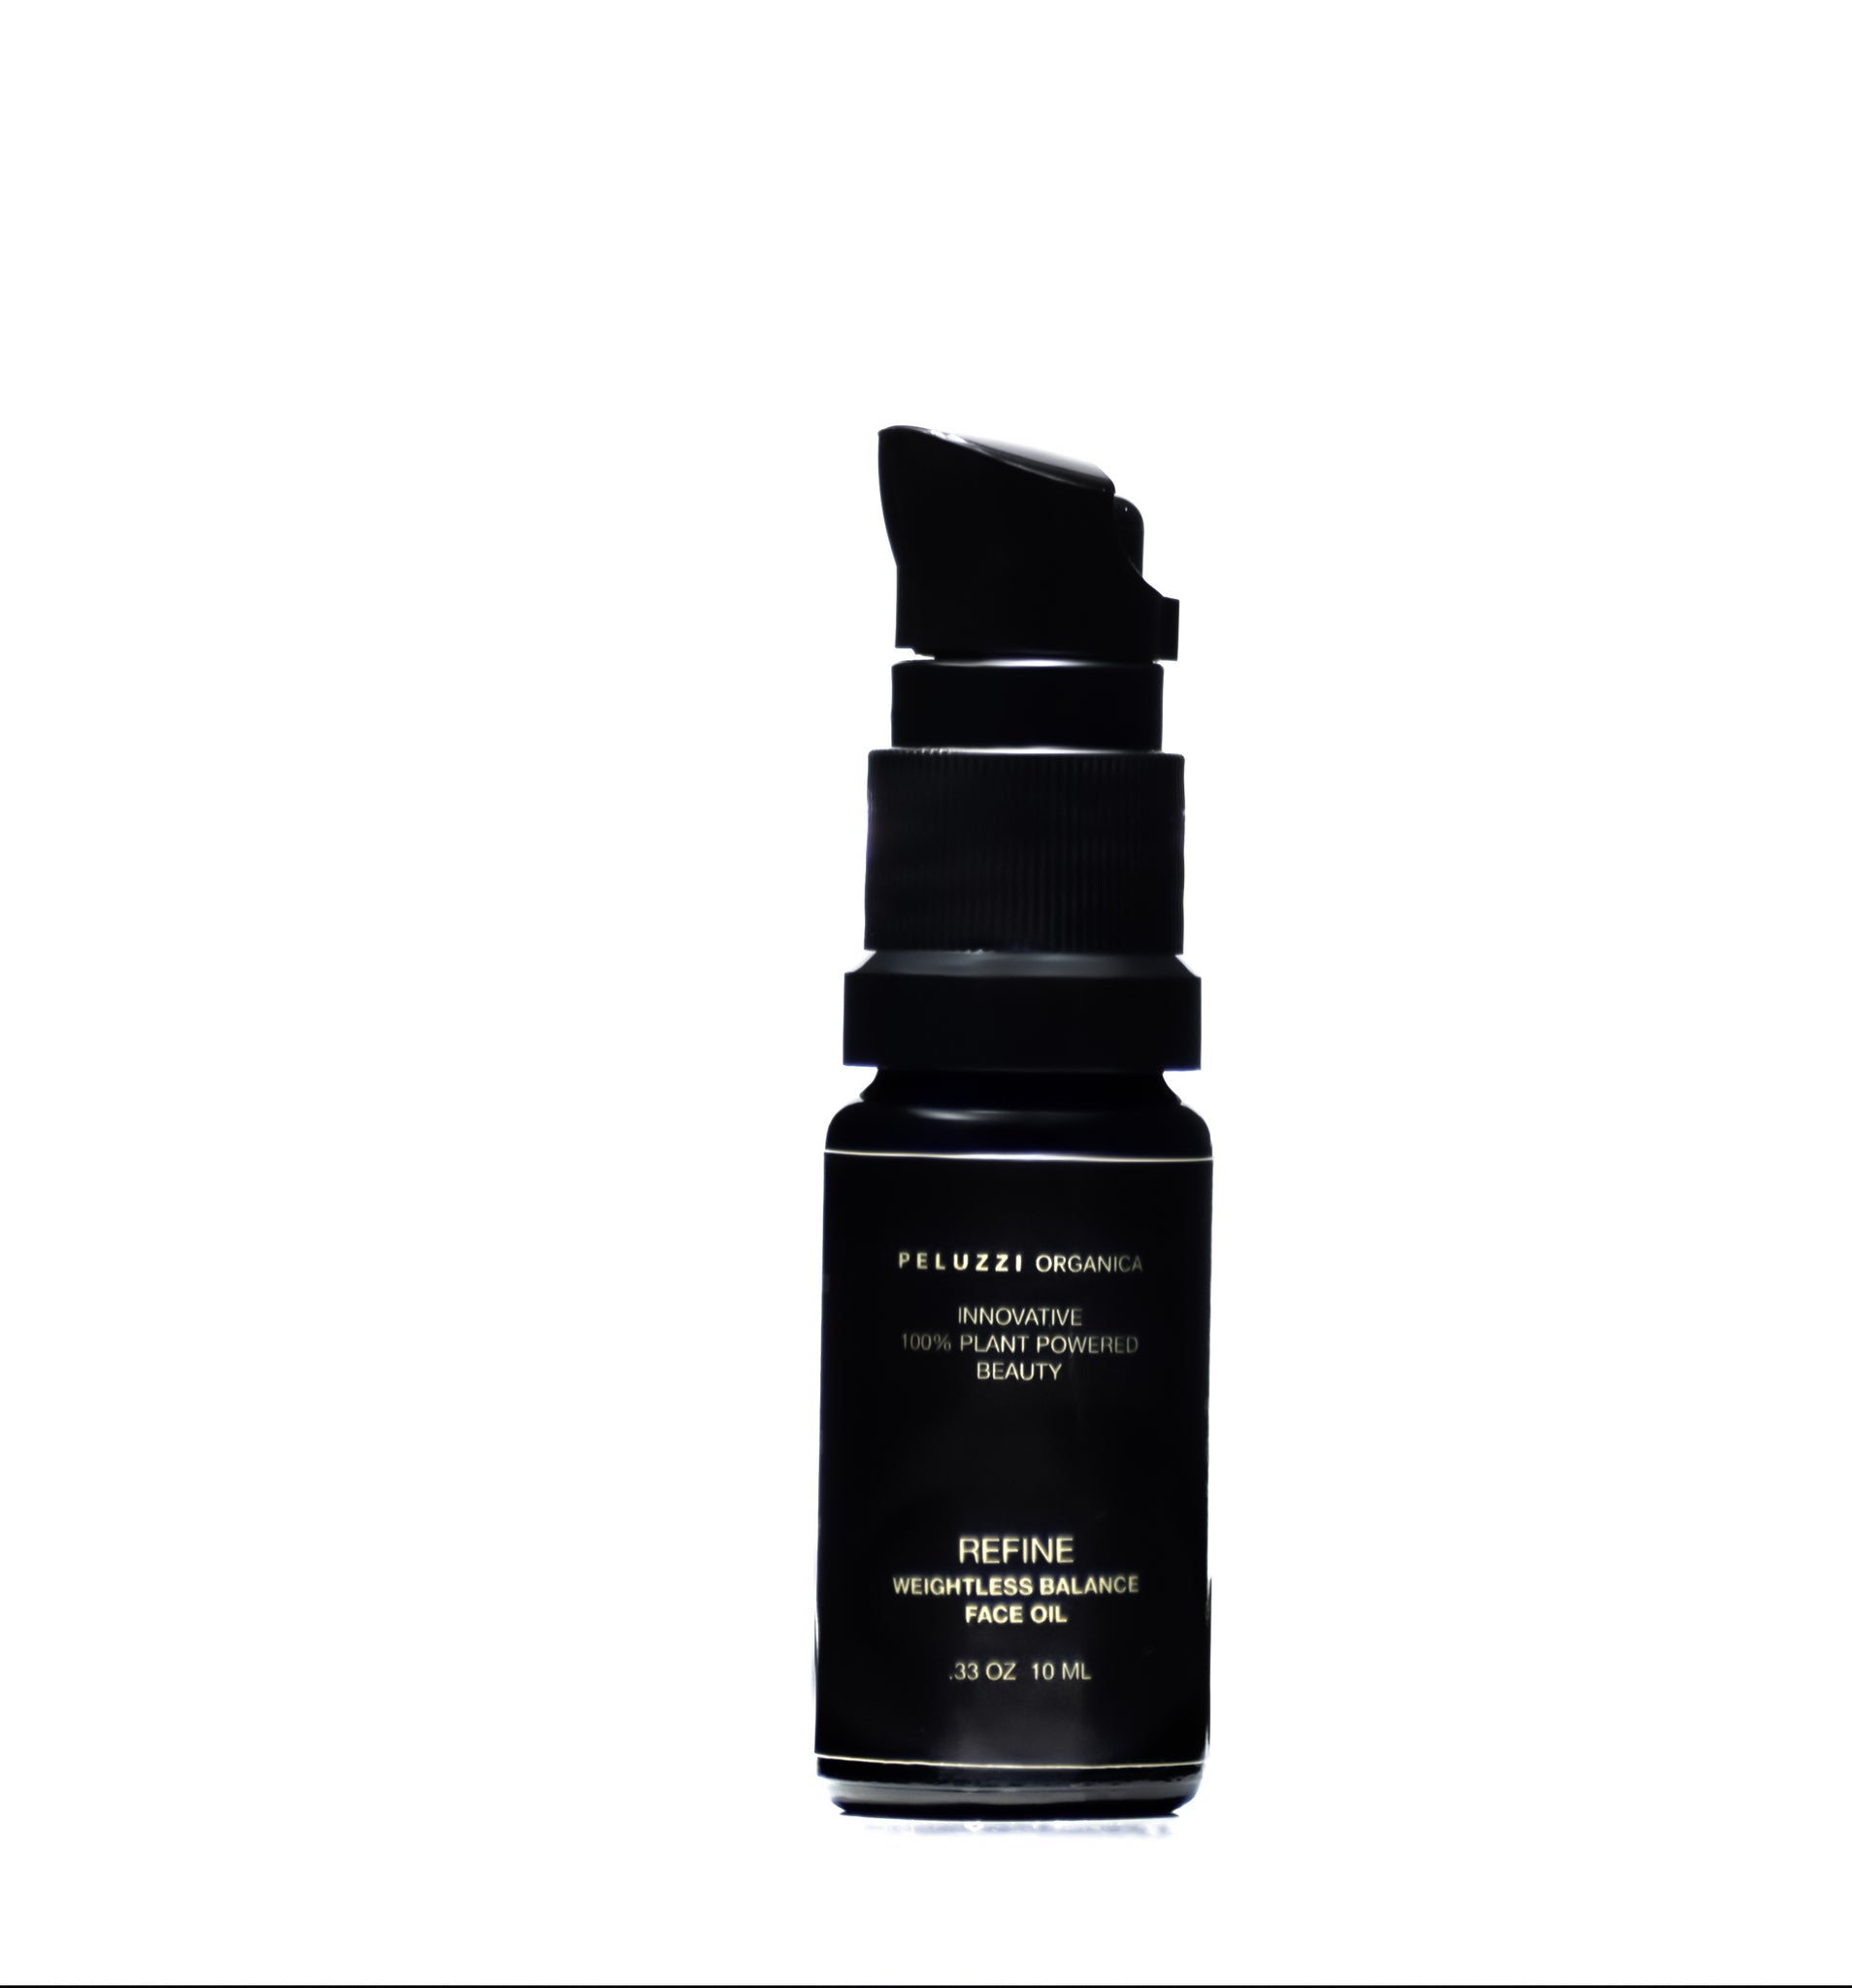 Refine Weightless Balance Face Oil Travel Mini - Peluzzi Organica